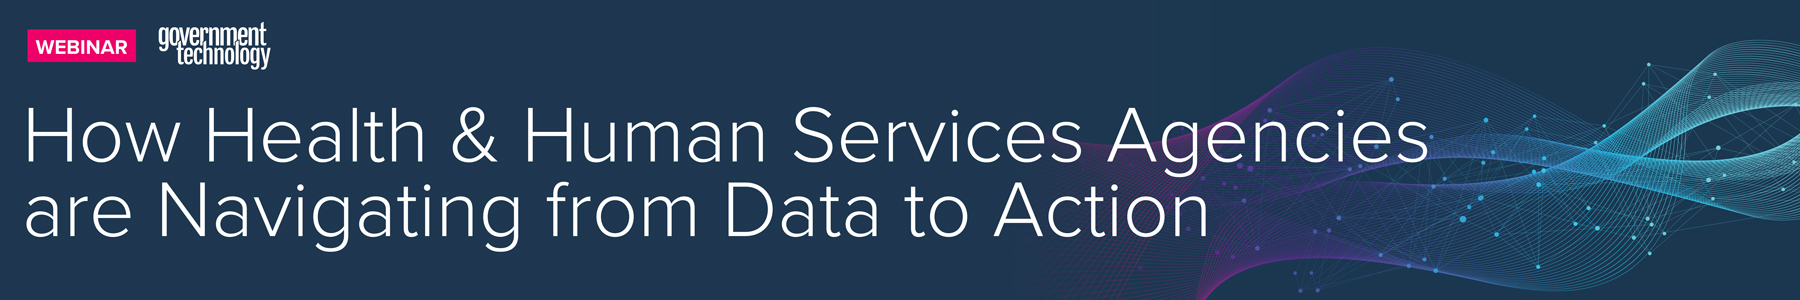 How Health & Human Services Agencies are Navigating from Data to Action